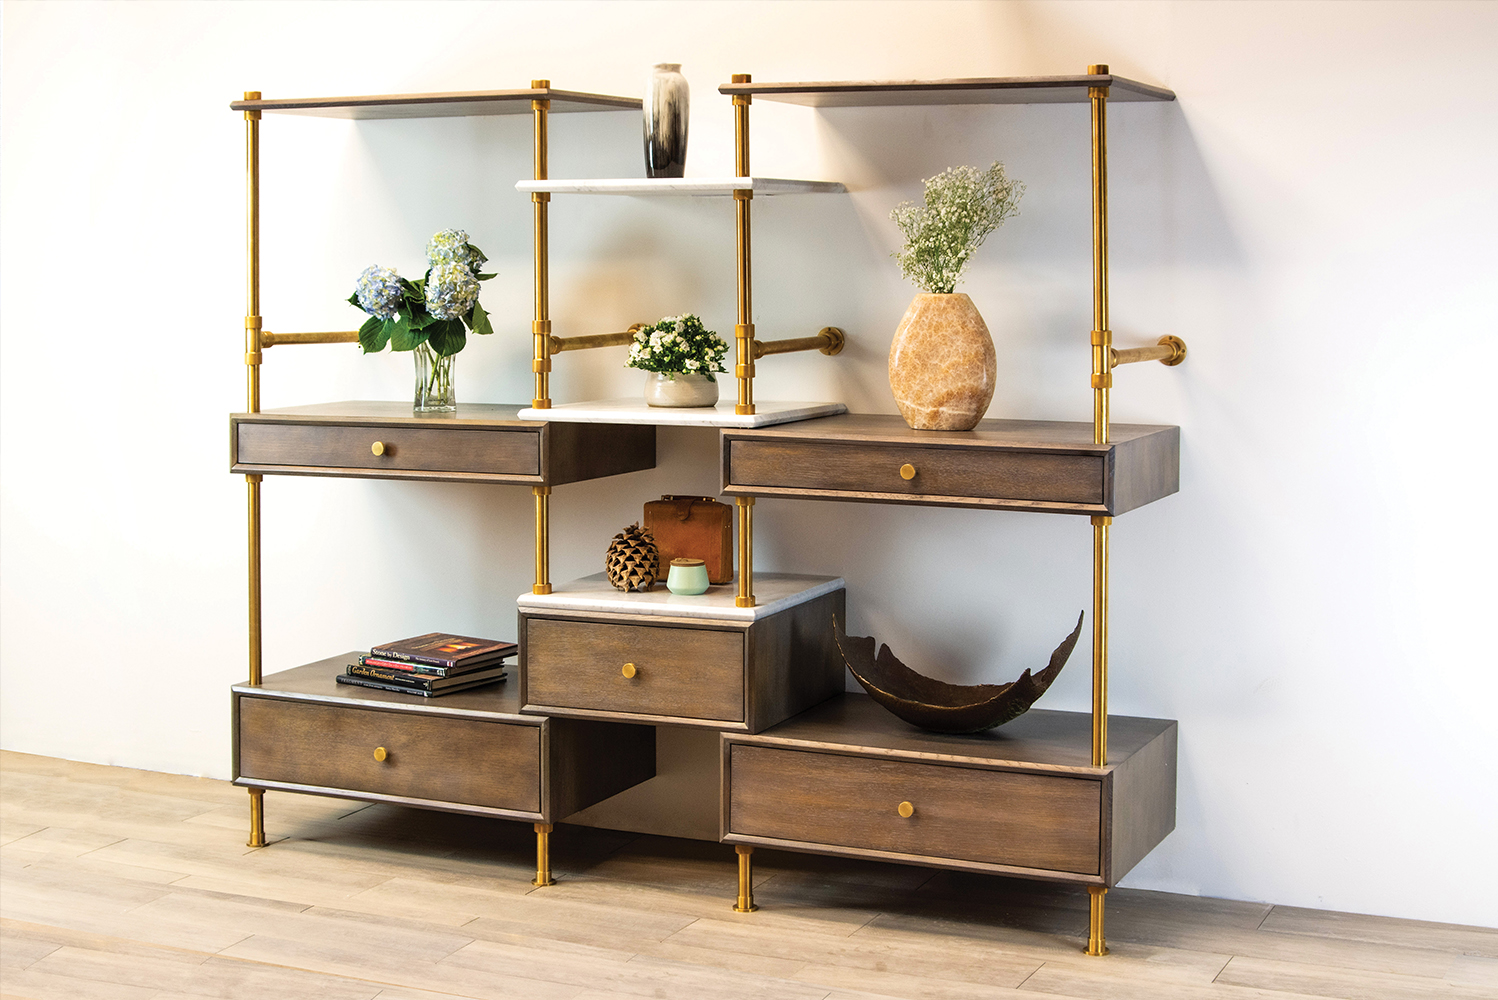 Stone Forest introduced its first furniture piece, the Elemental storage wall etagere.